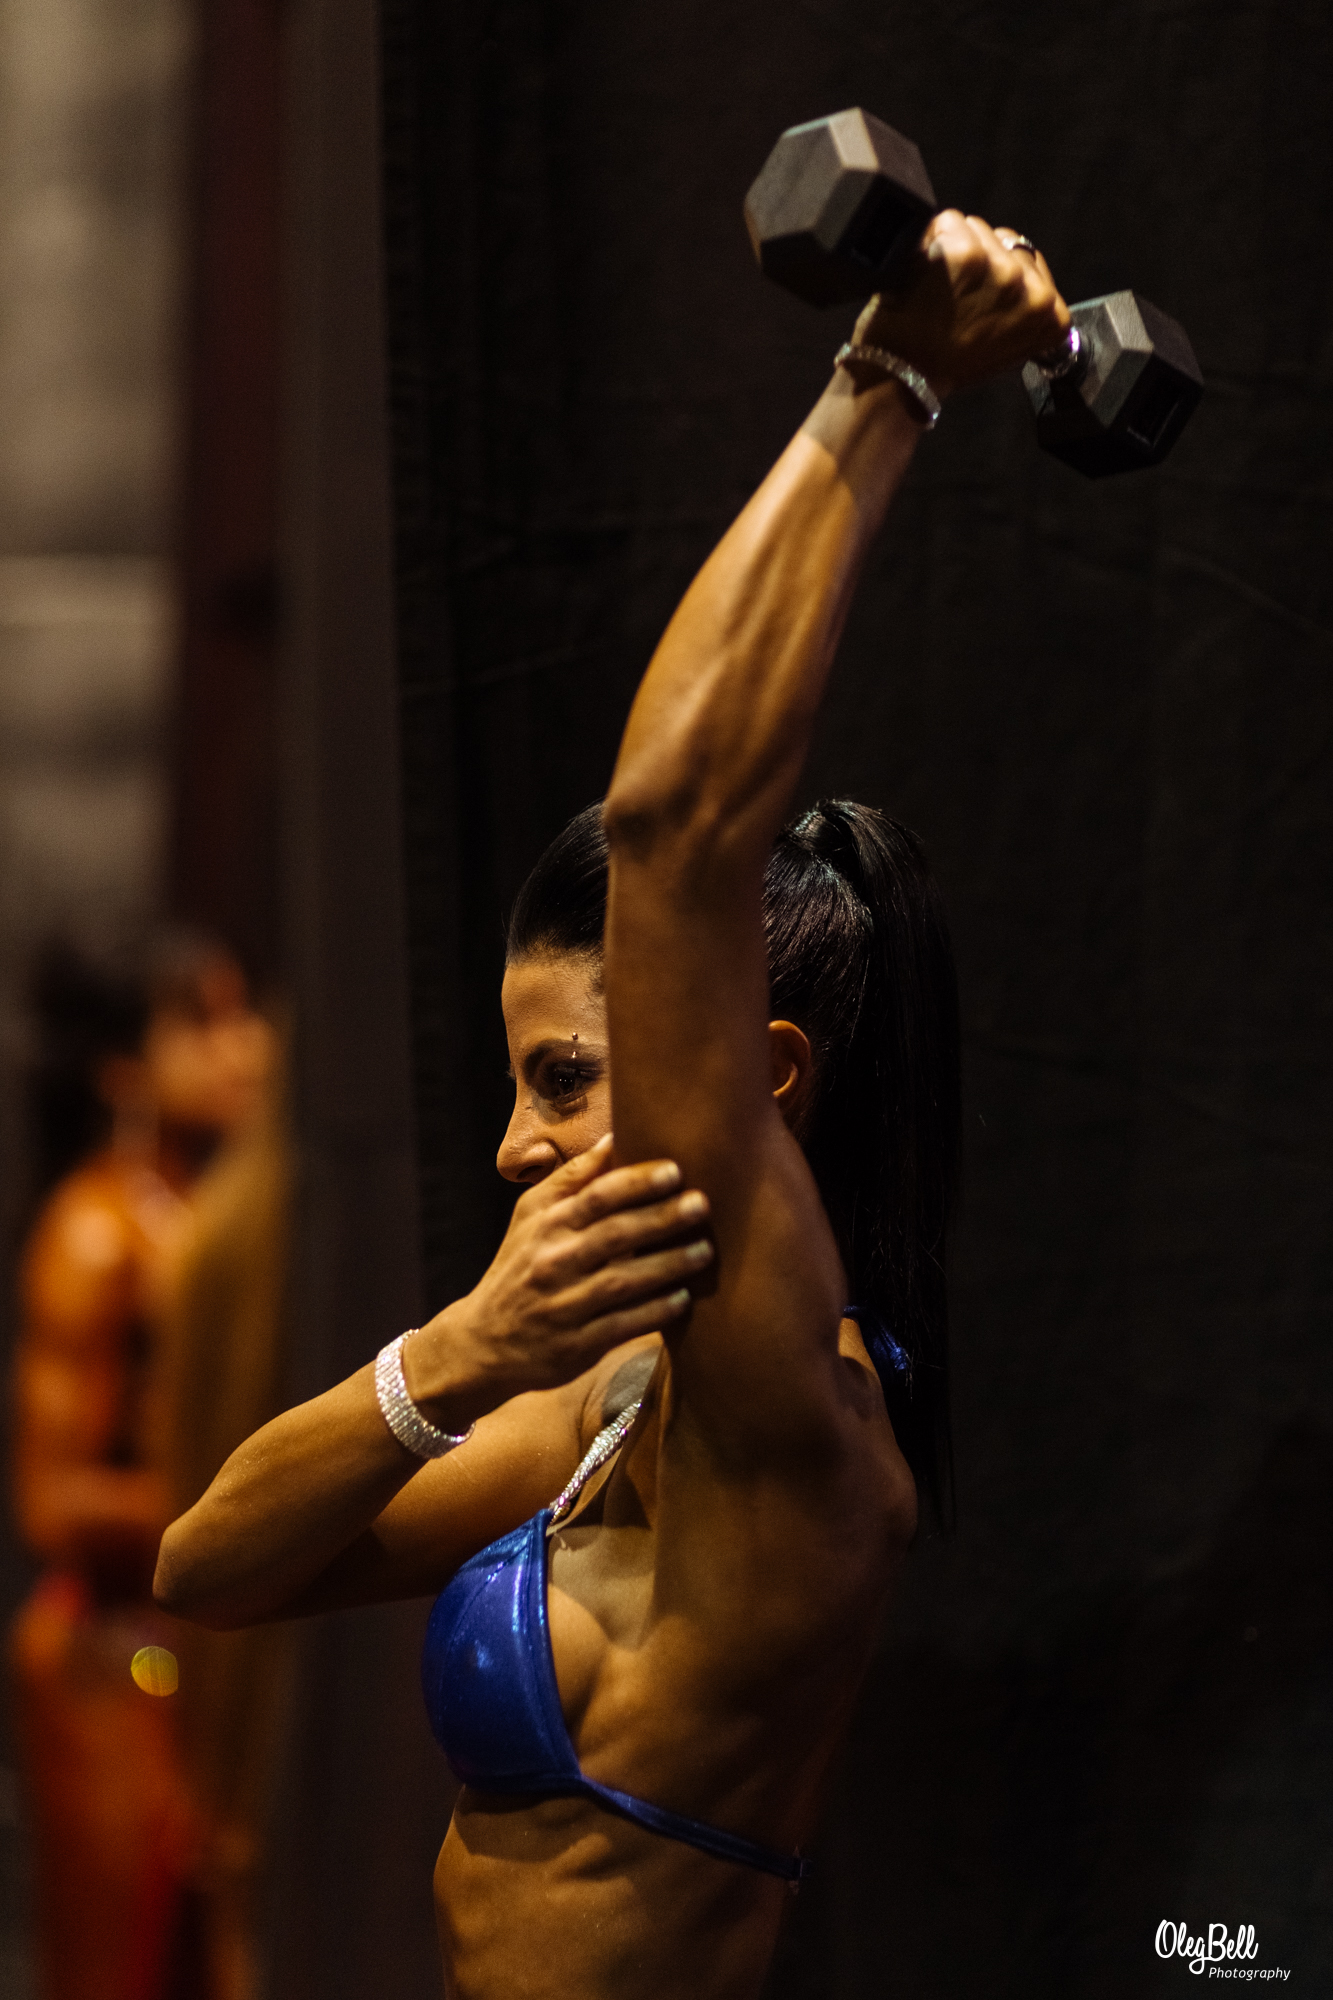 NICOLE_BODYBUILDING_COMPETITIONS_0096.jpg